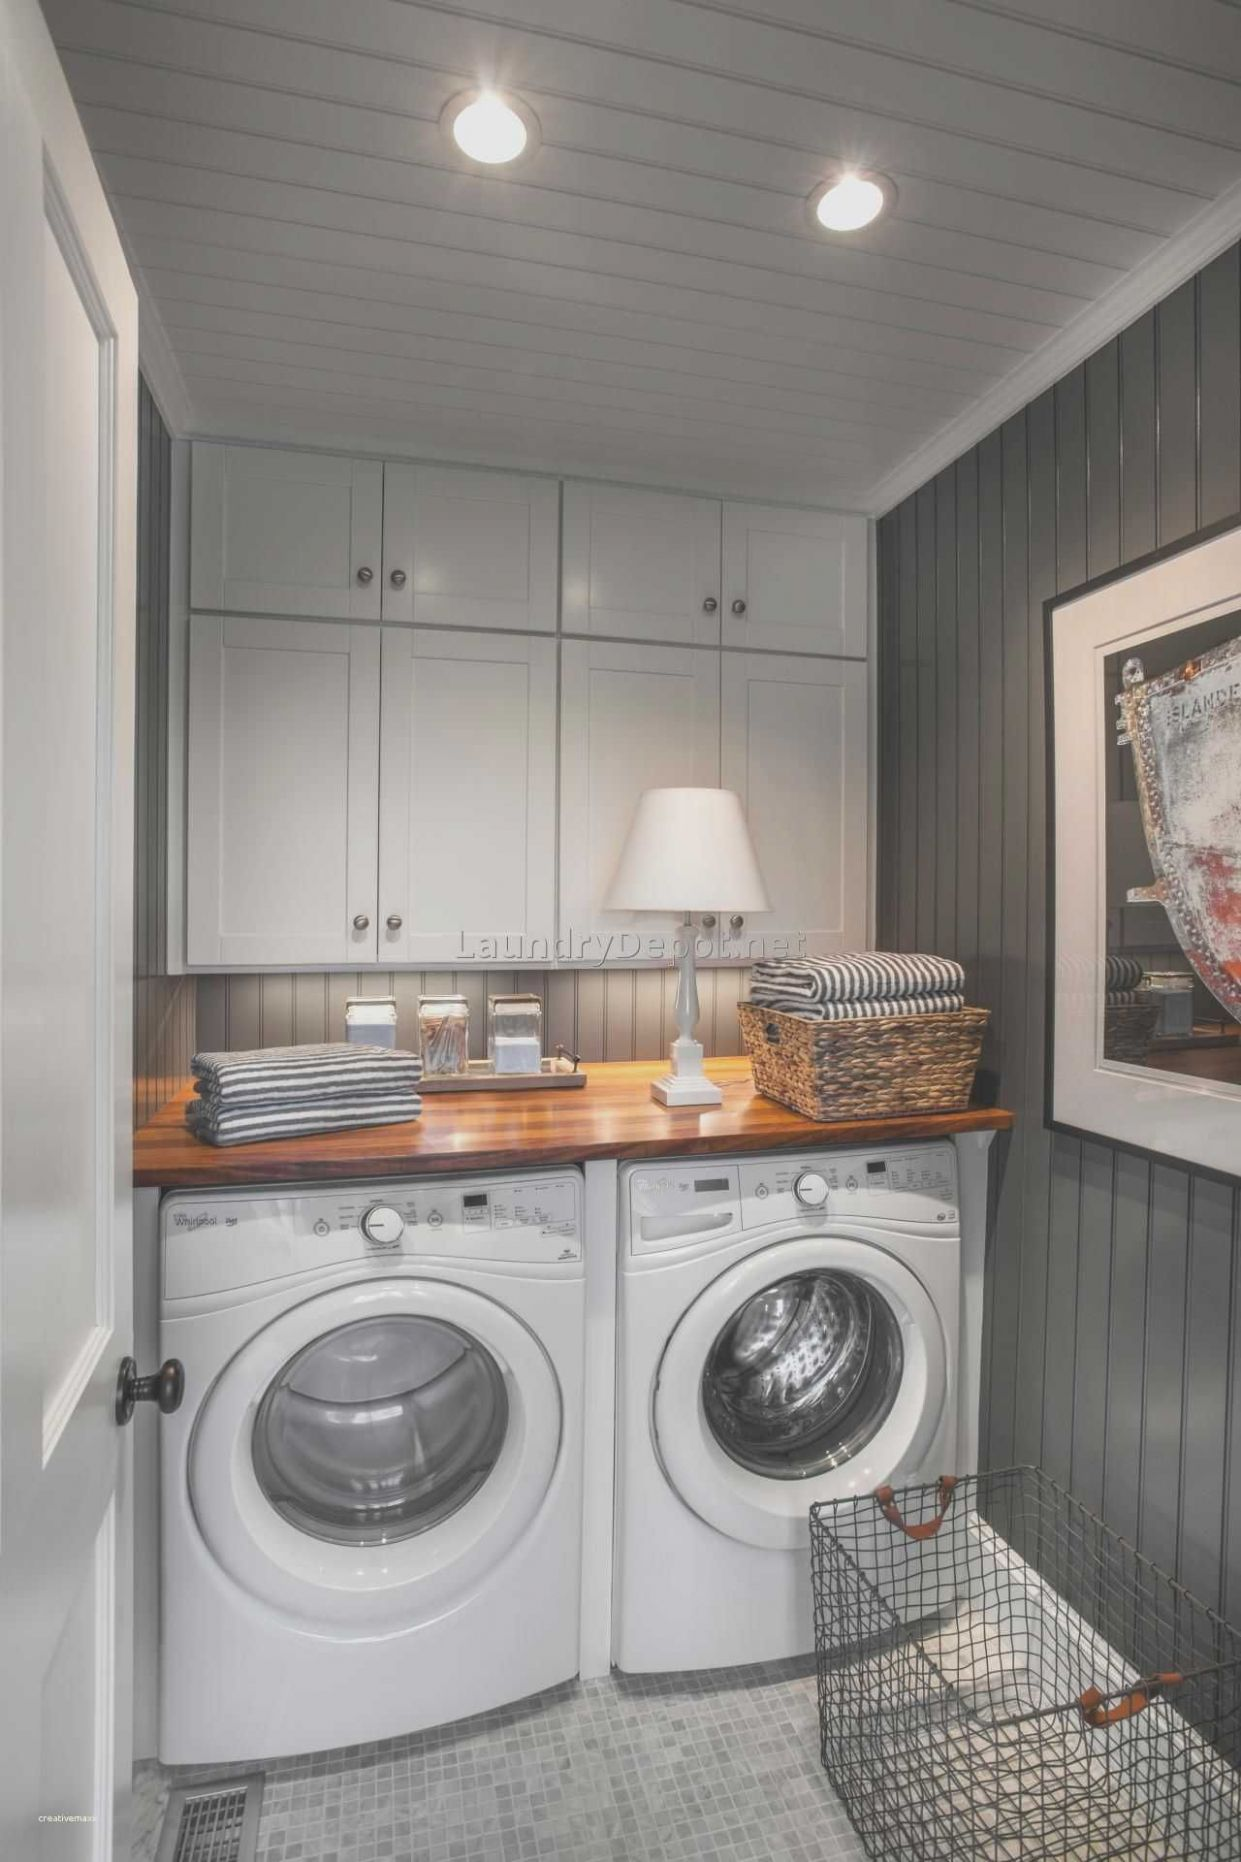 Laundry Room Ideas Small Stackable Closet - Luxury Laundry Room ..